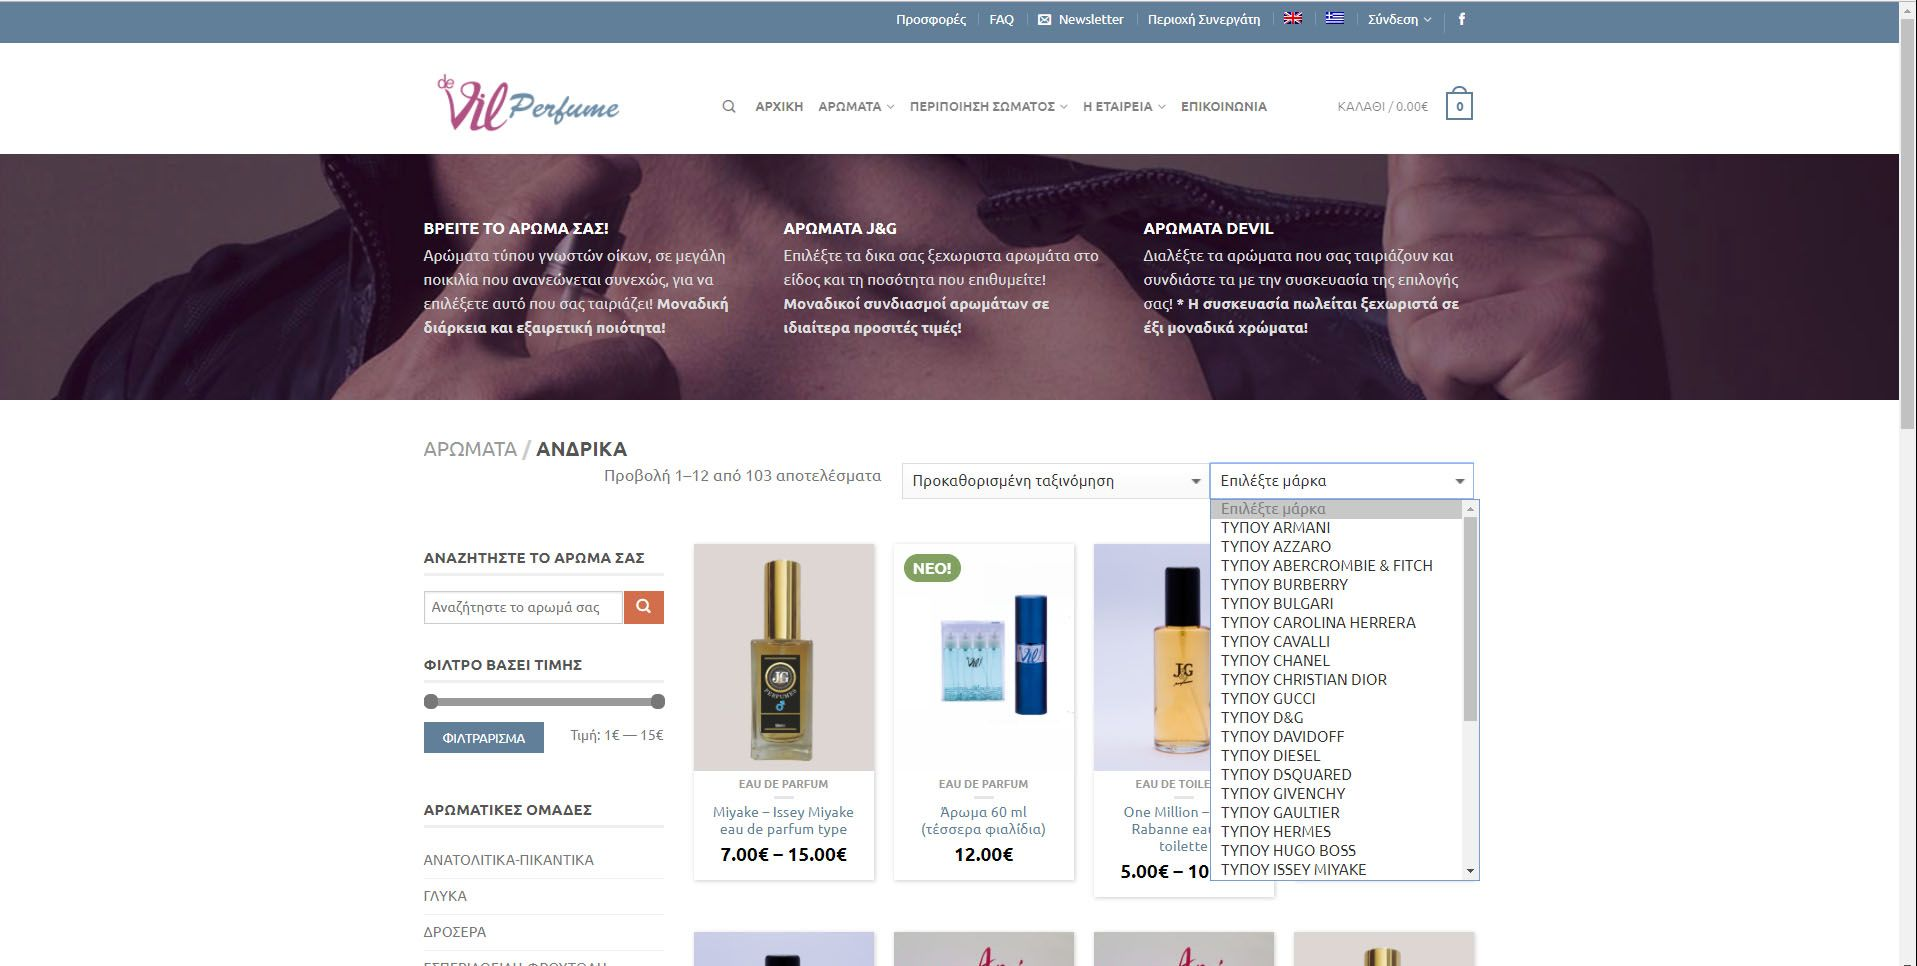 Devilperfume product search